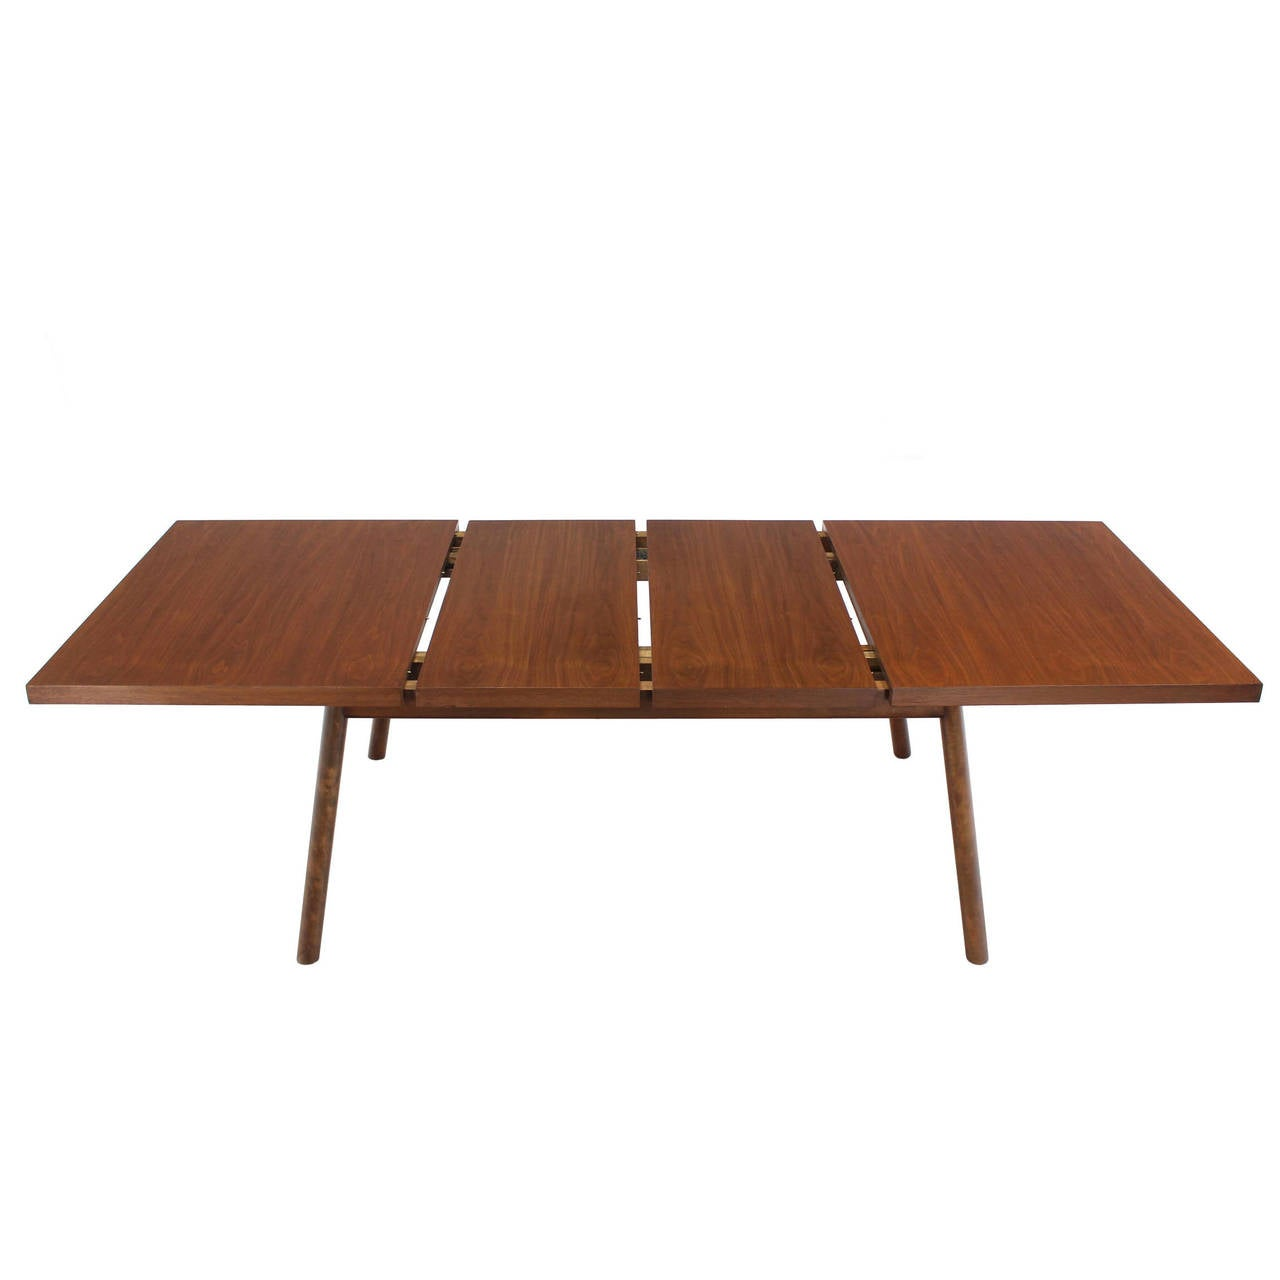 Robsjohn gibbings walnut extention dining table with two for Dining room table 2 leaves